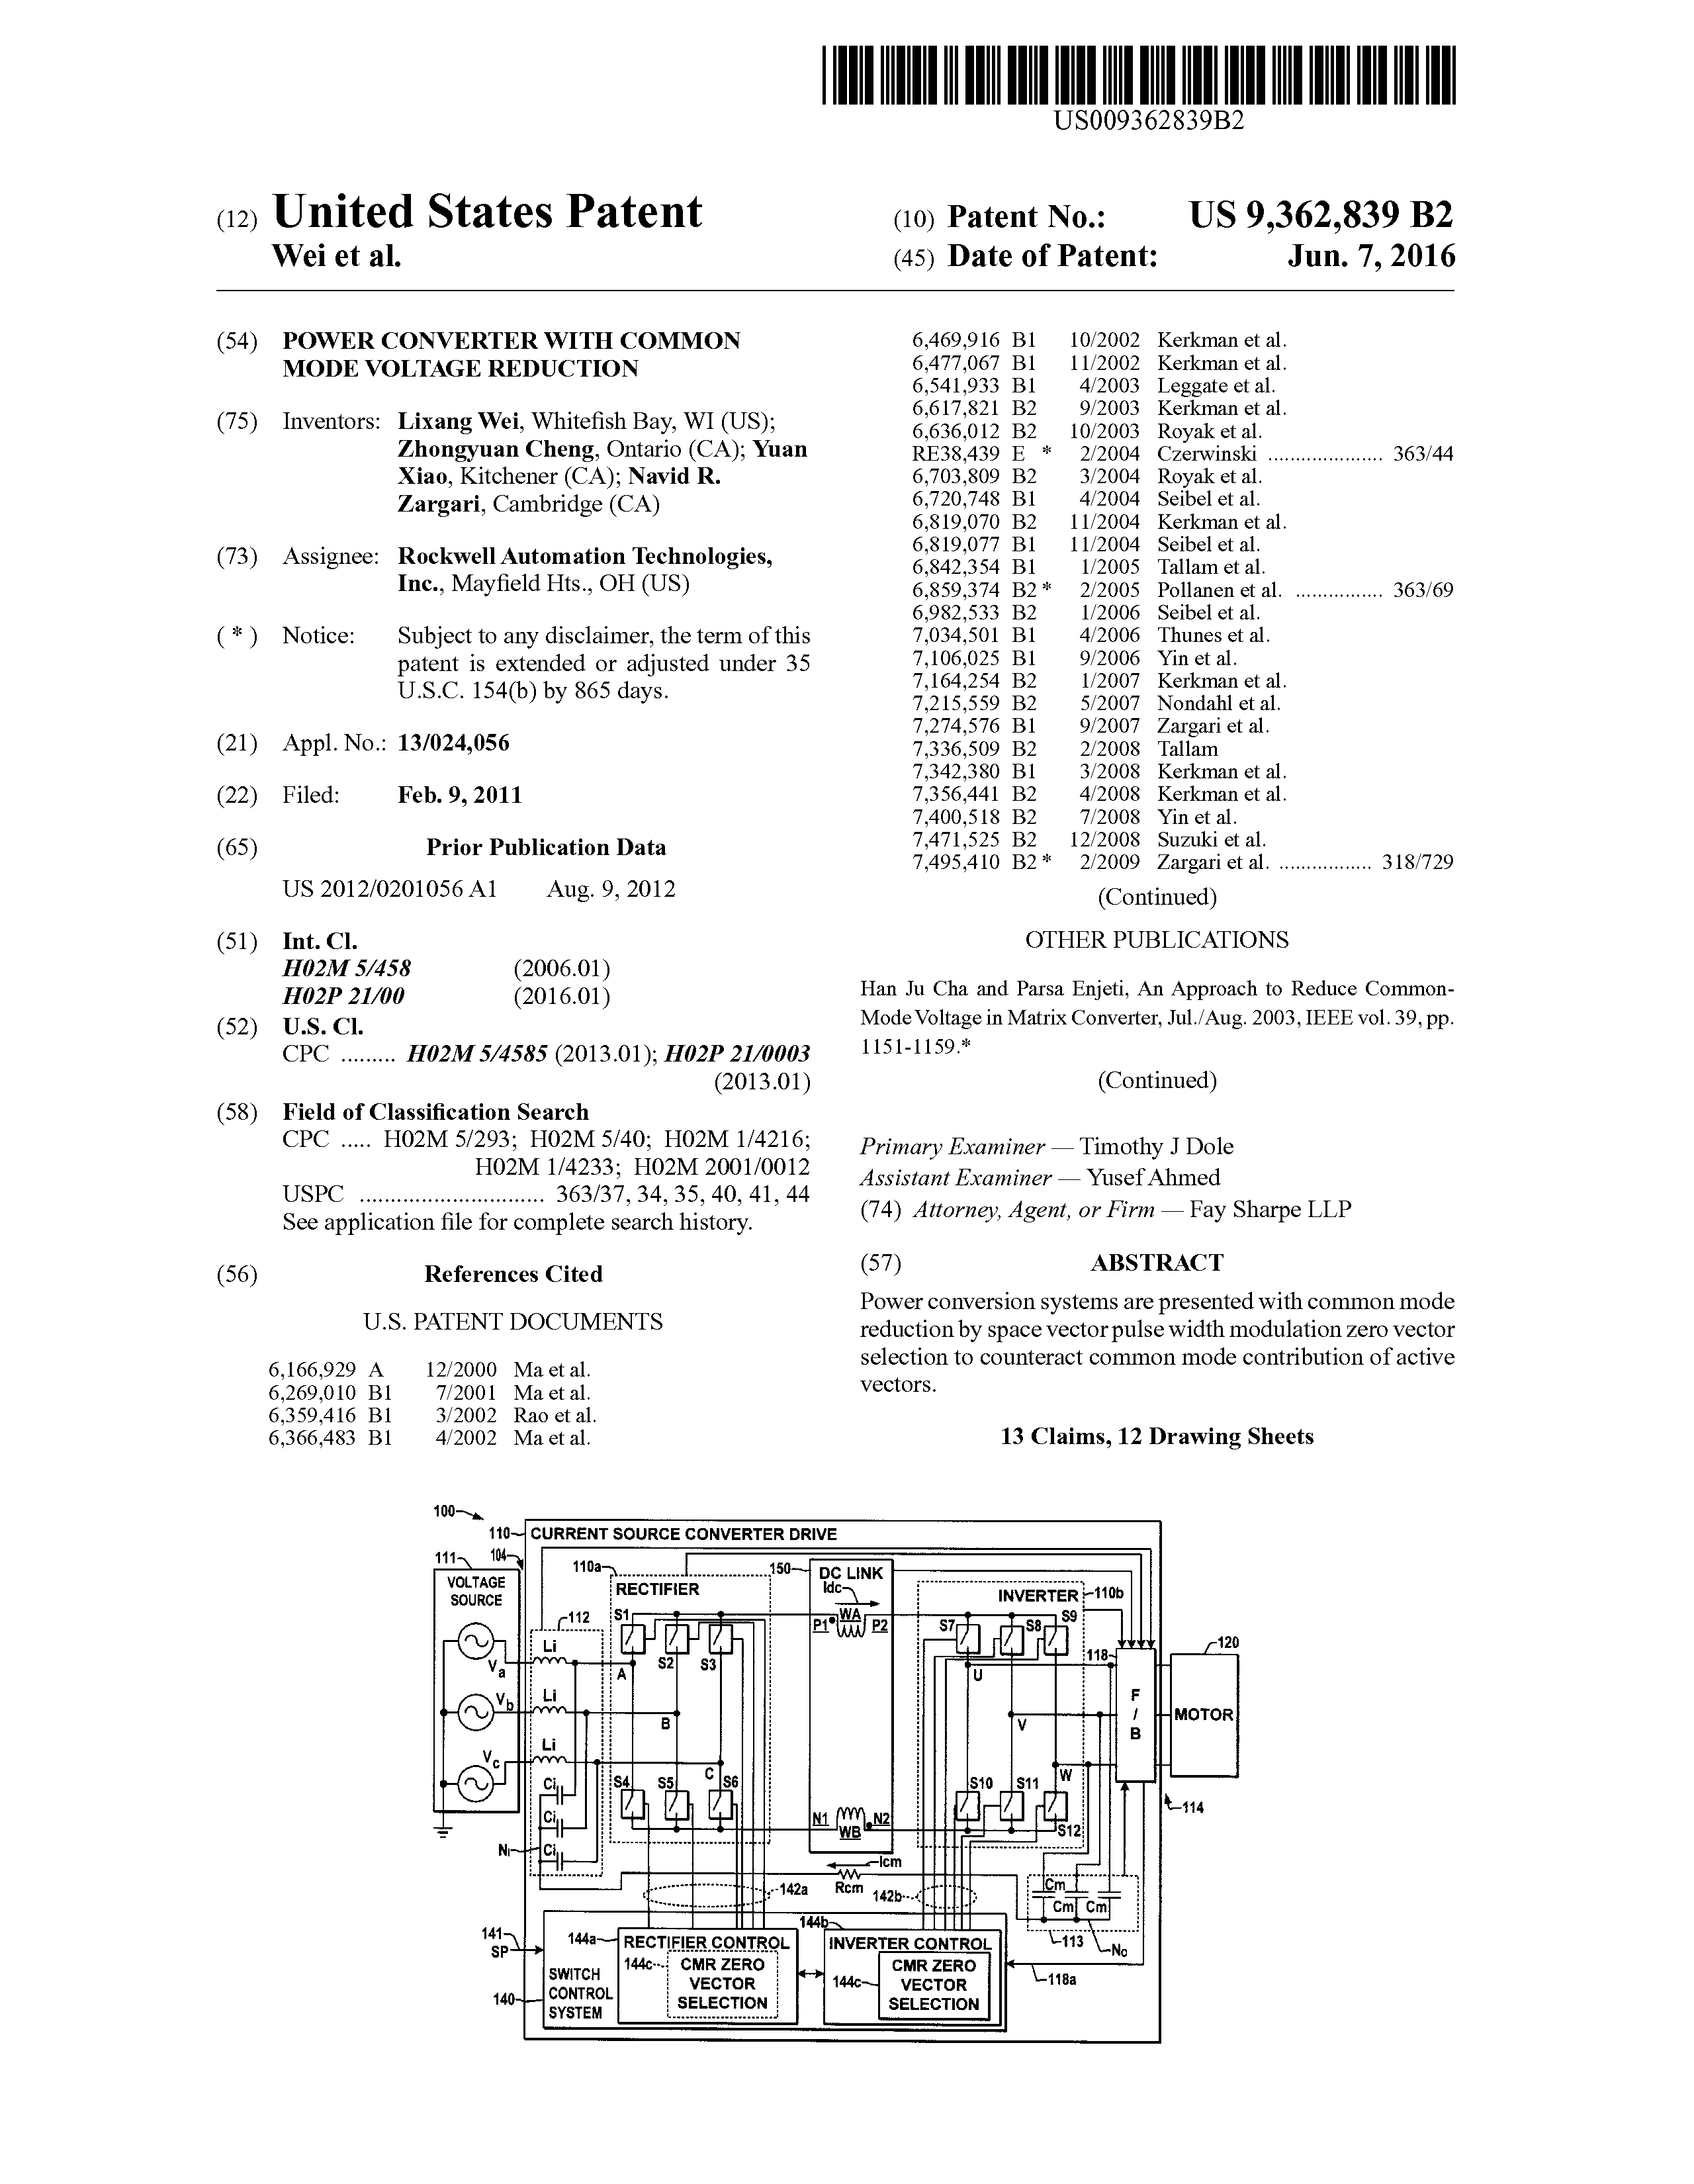 US 9362839 B2 - Power Converter With Common Mode Voltage